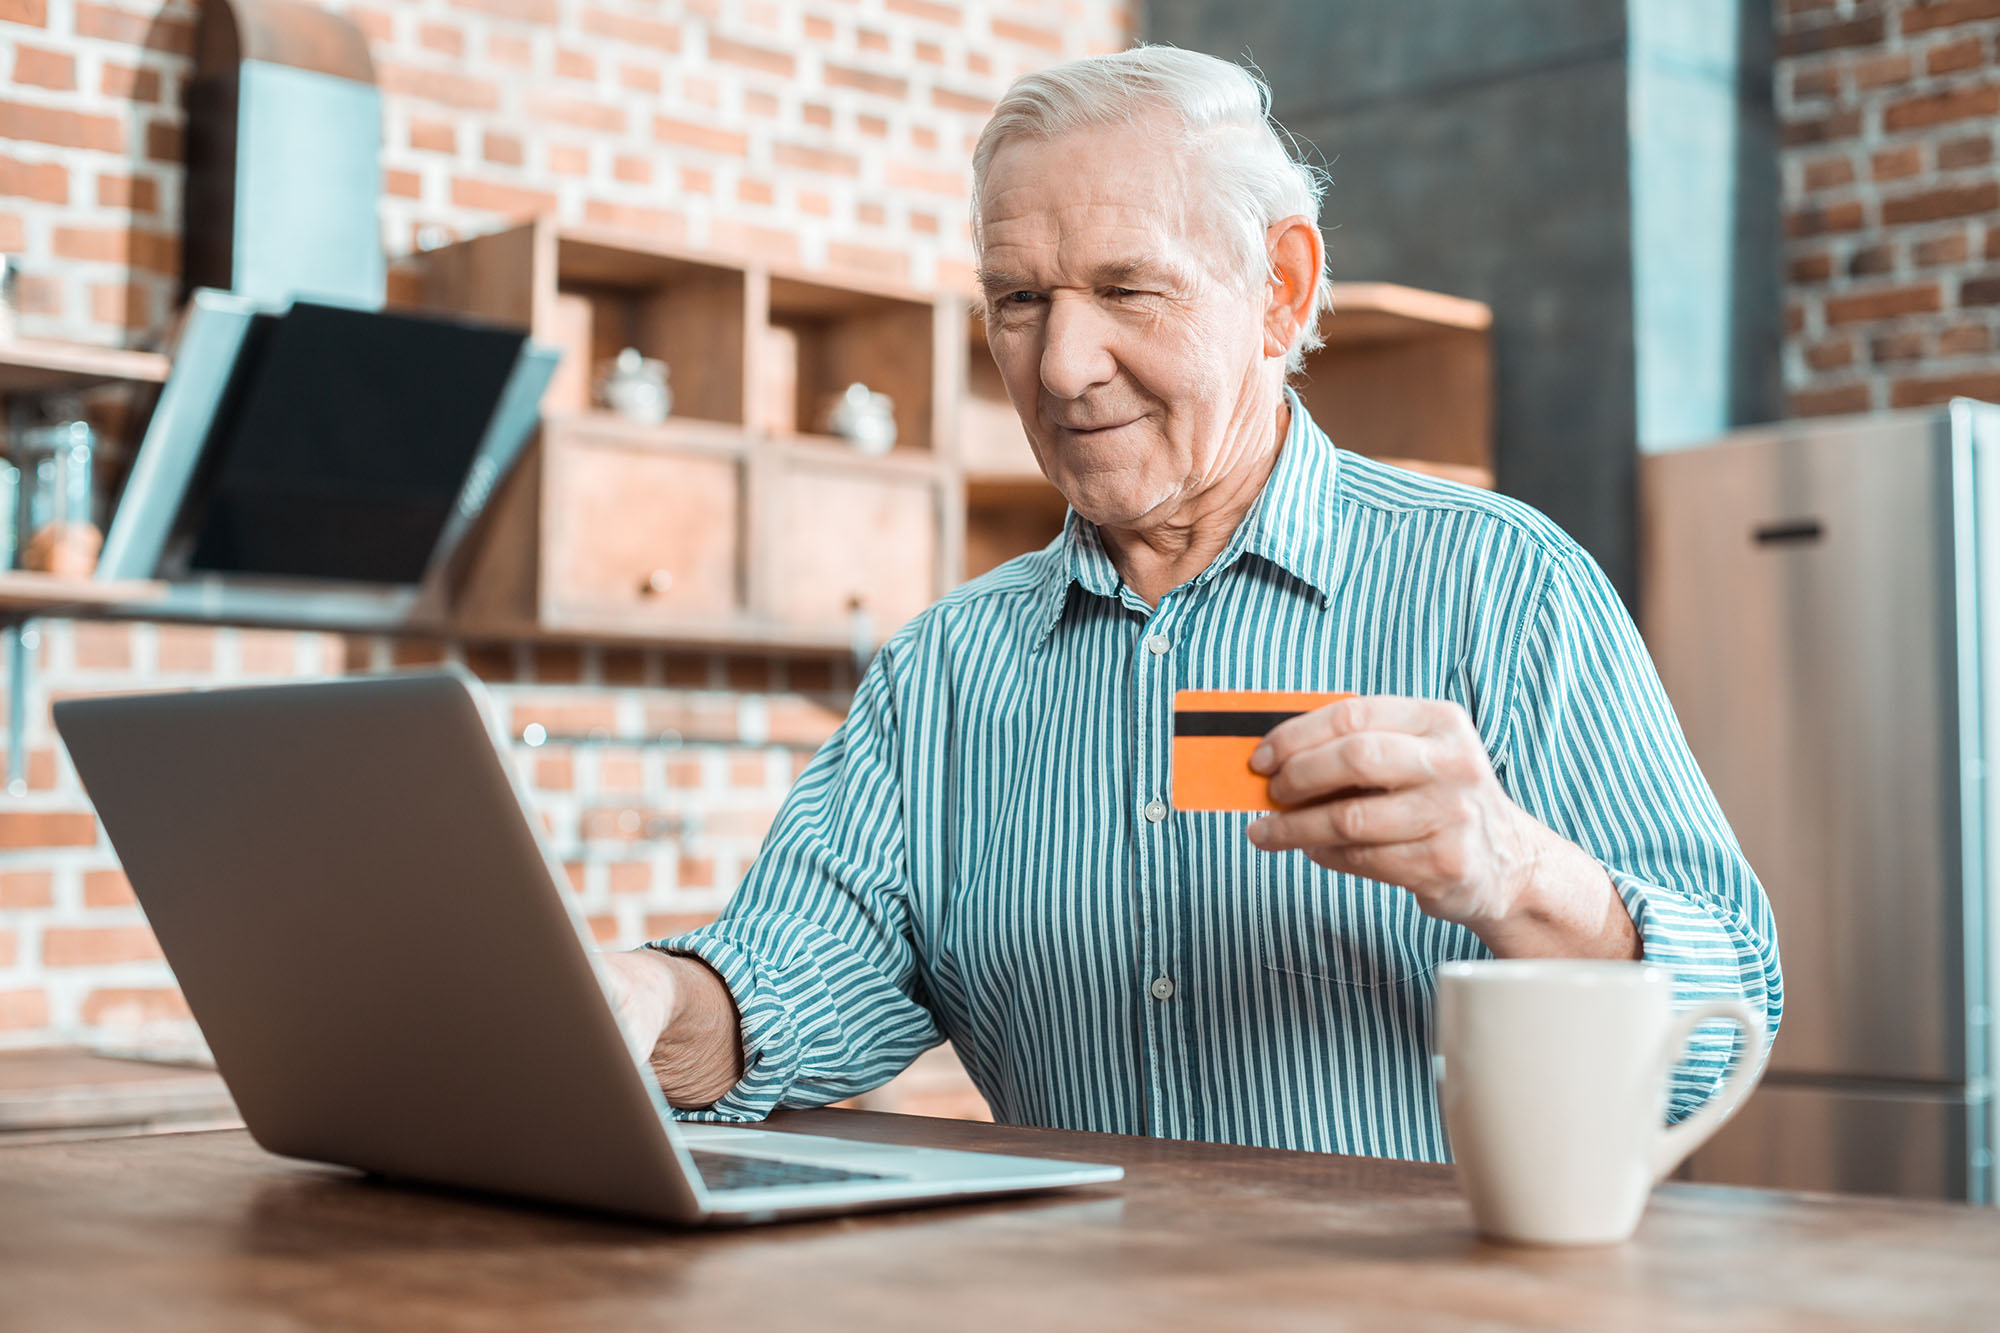 Elderly man using healthcare technology